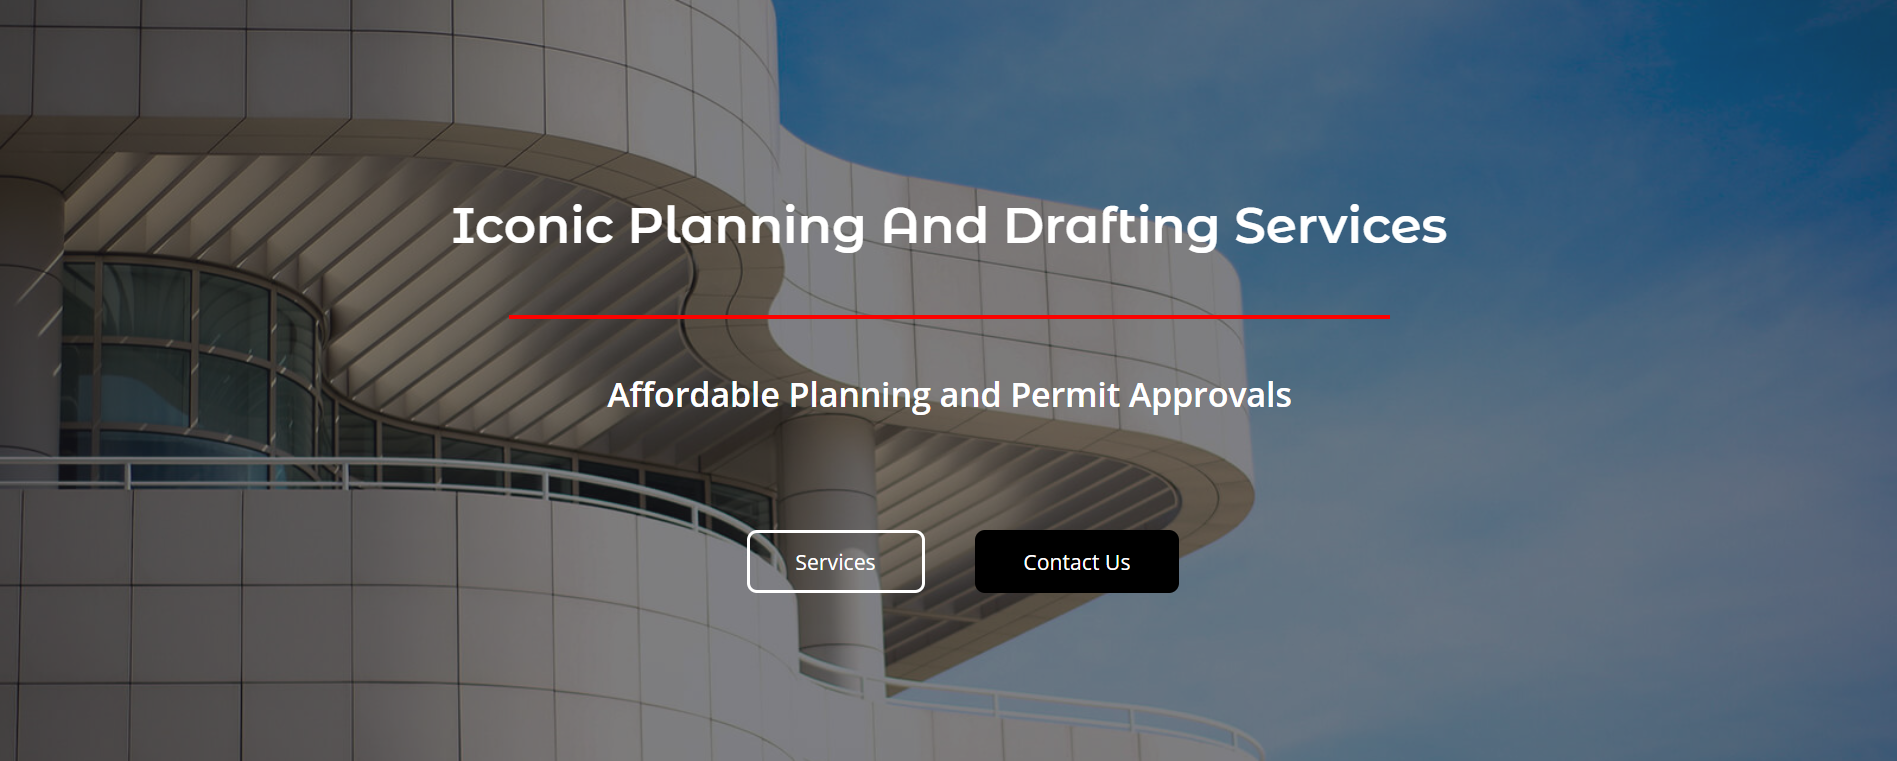 Iconic Planning And Drafting Services